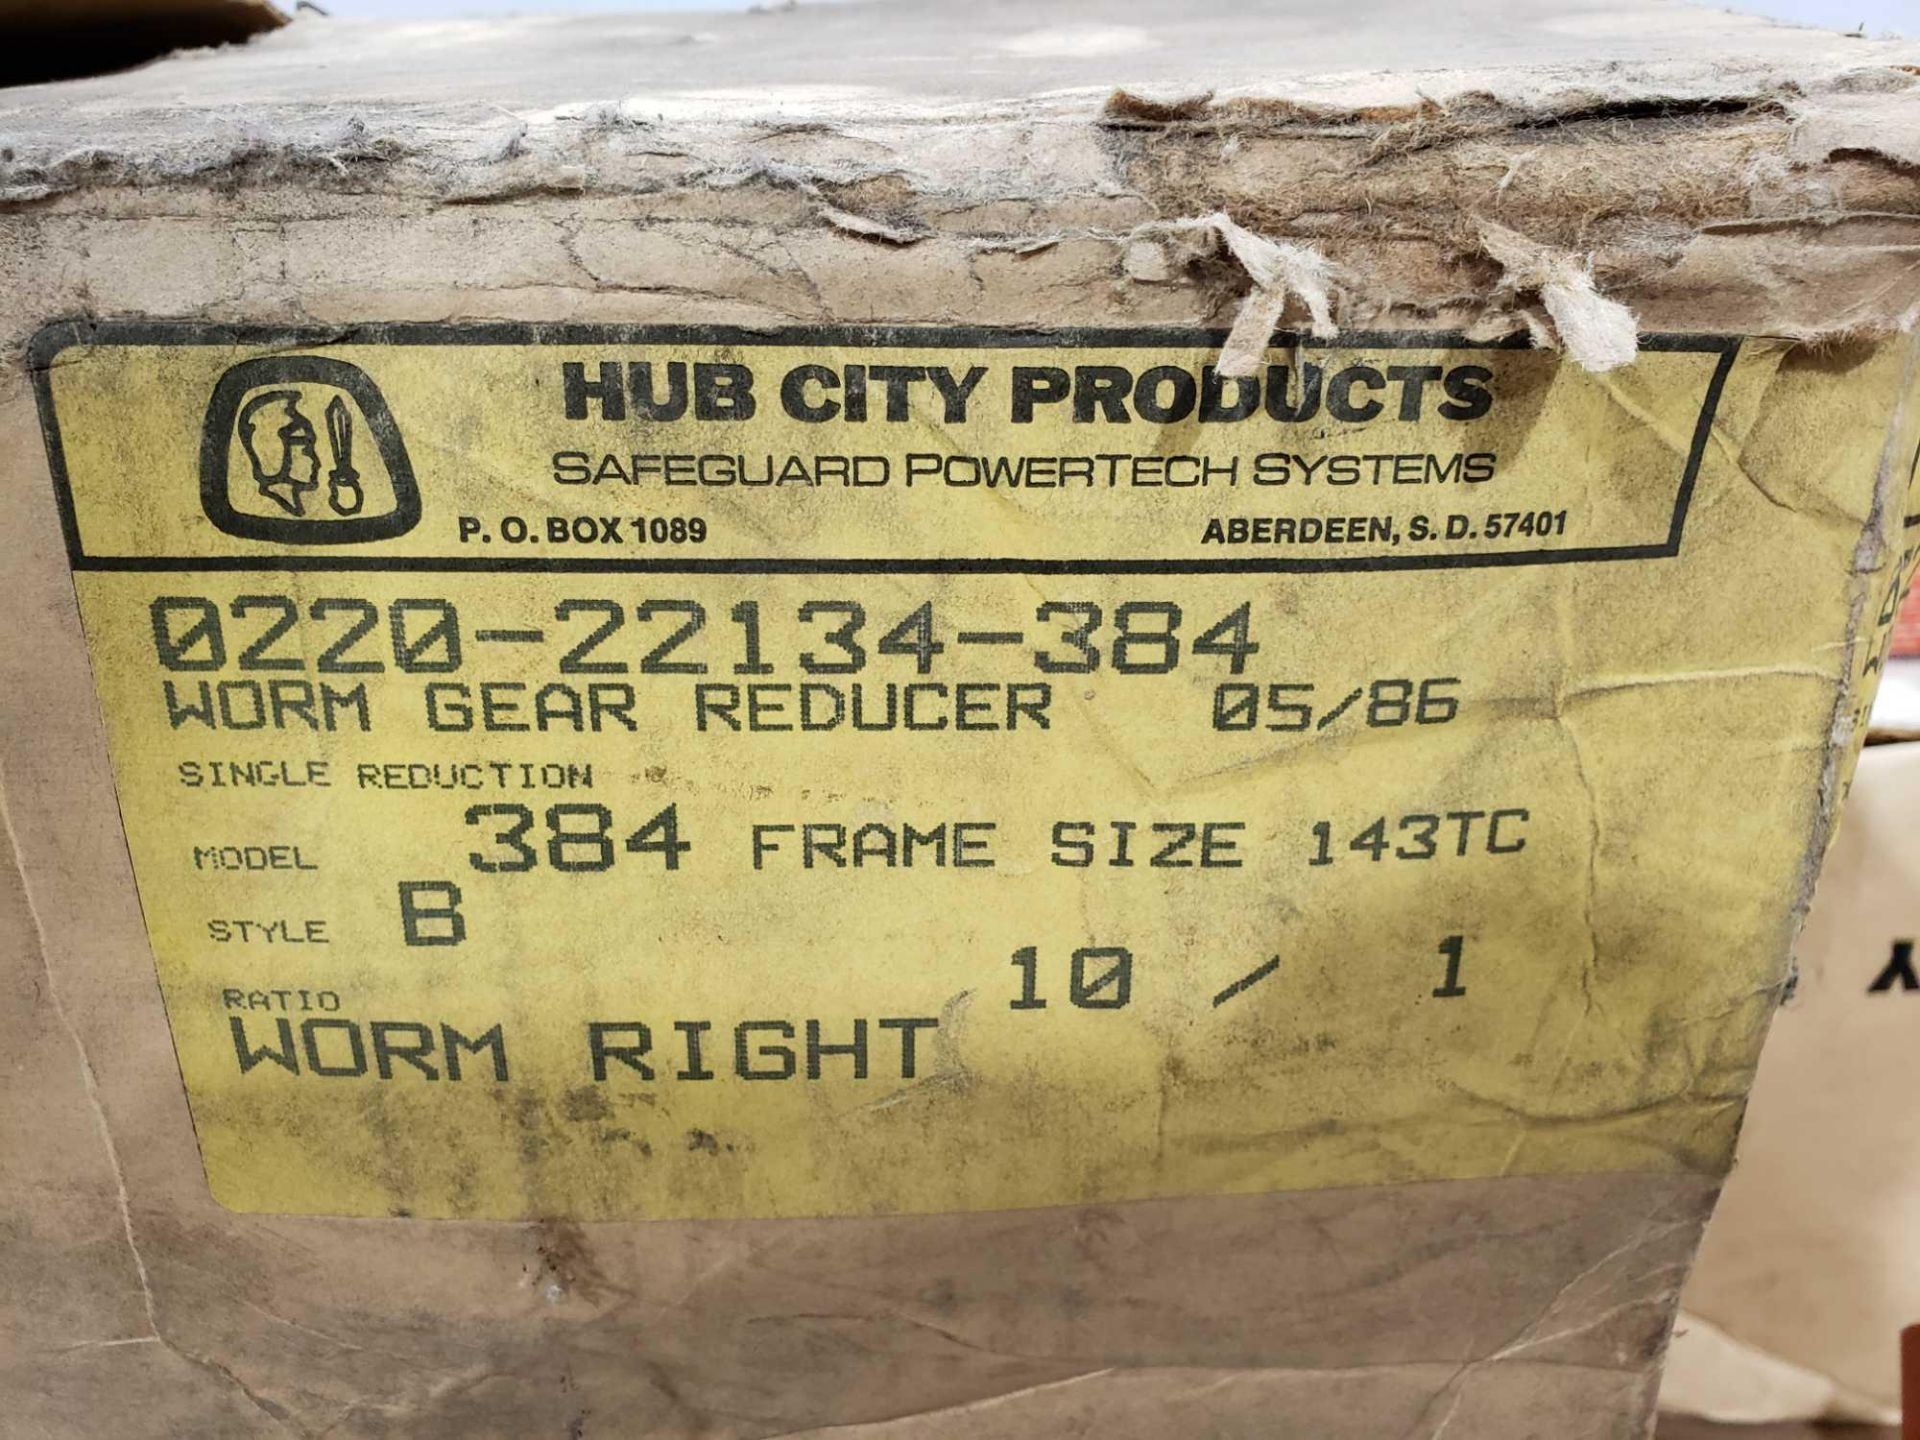 Lot 35 - Hub City model 0220-22134-384 worm gear reducer. Frame size 143TC. 10:1 ratio. New in box.